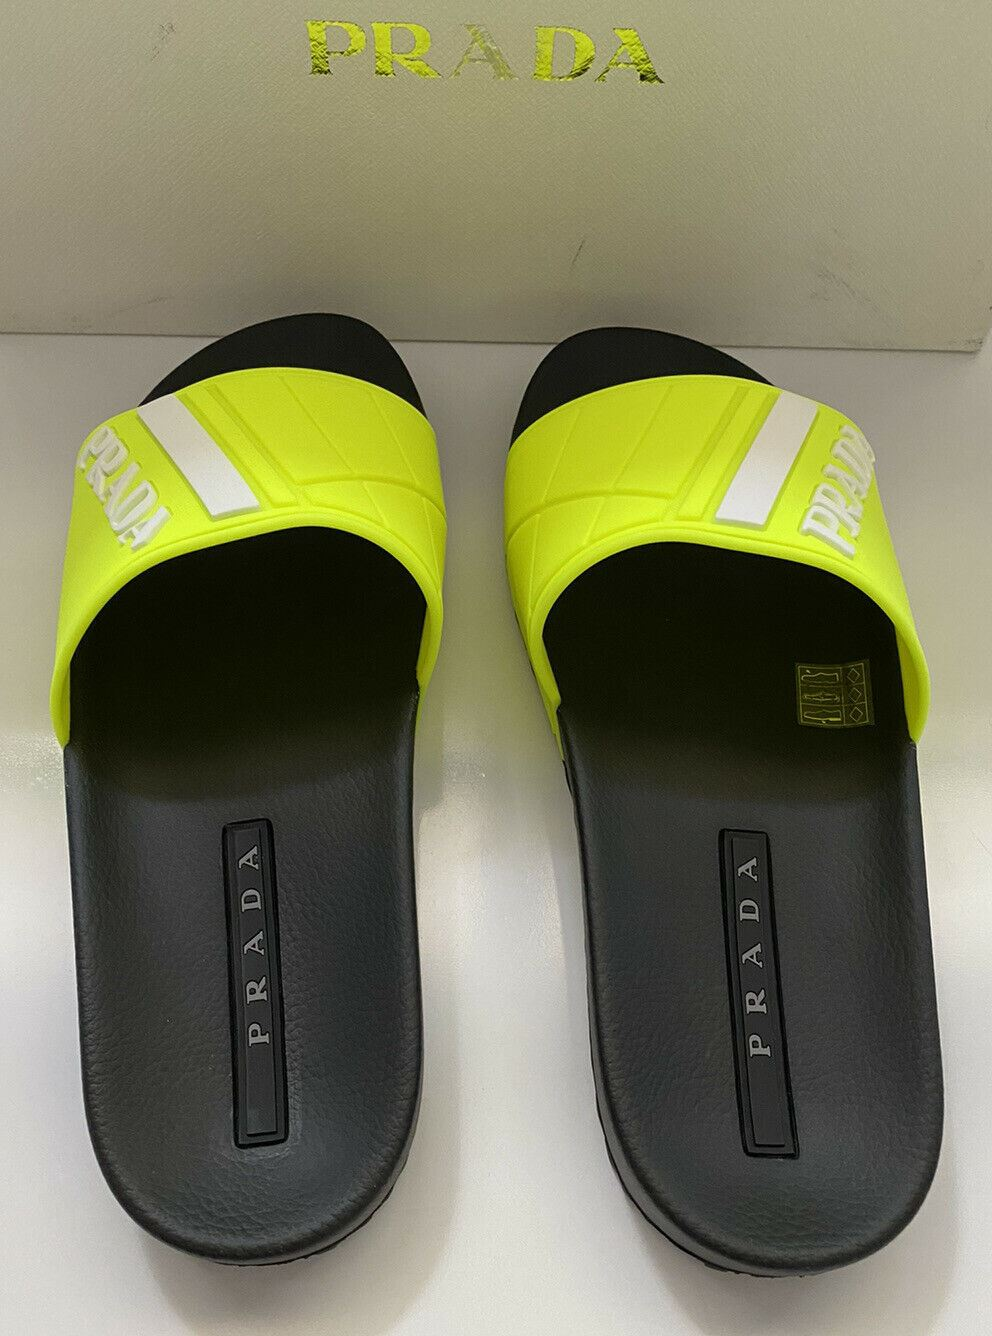 NIB $480 Prada Mens Rubber Sandals Neon Yellow 9 US 4X3204